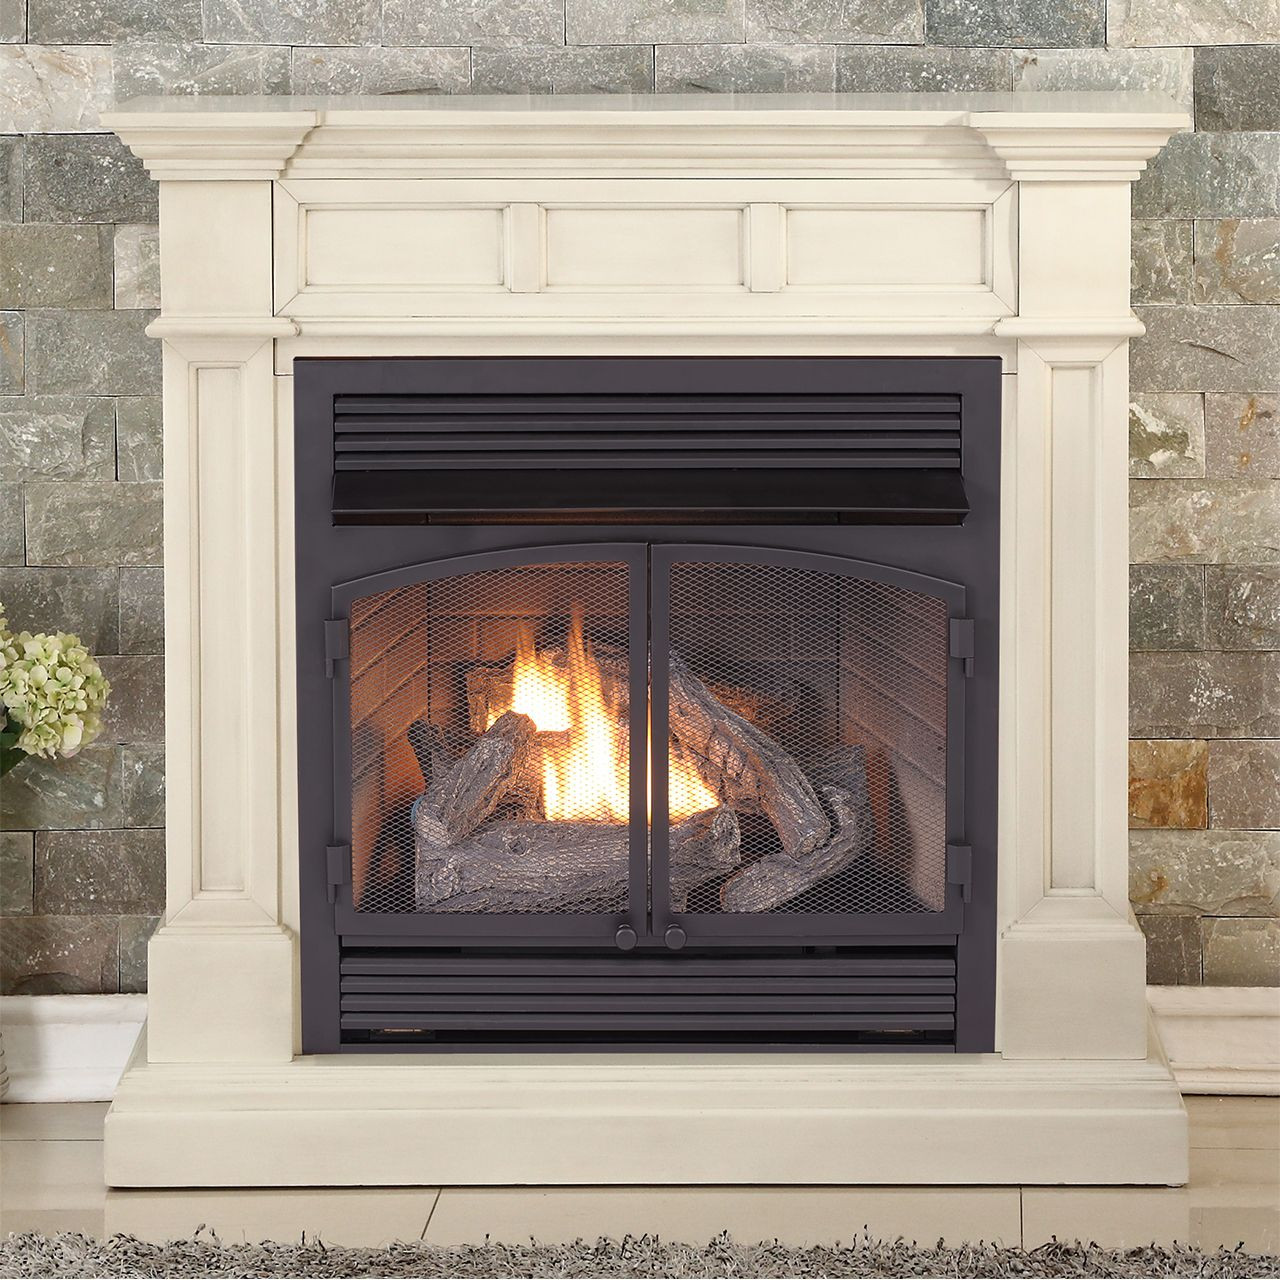 Ventless Fireplace Gas Gas Fireplace Natural Gas Ventless Fireplace Bewildering On Modern Home